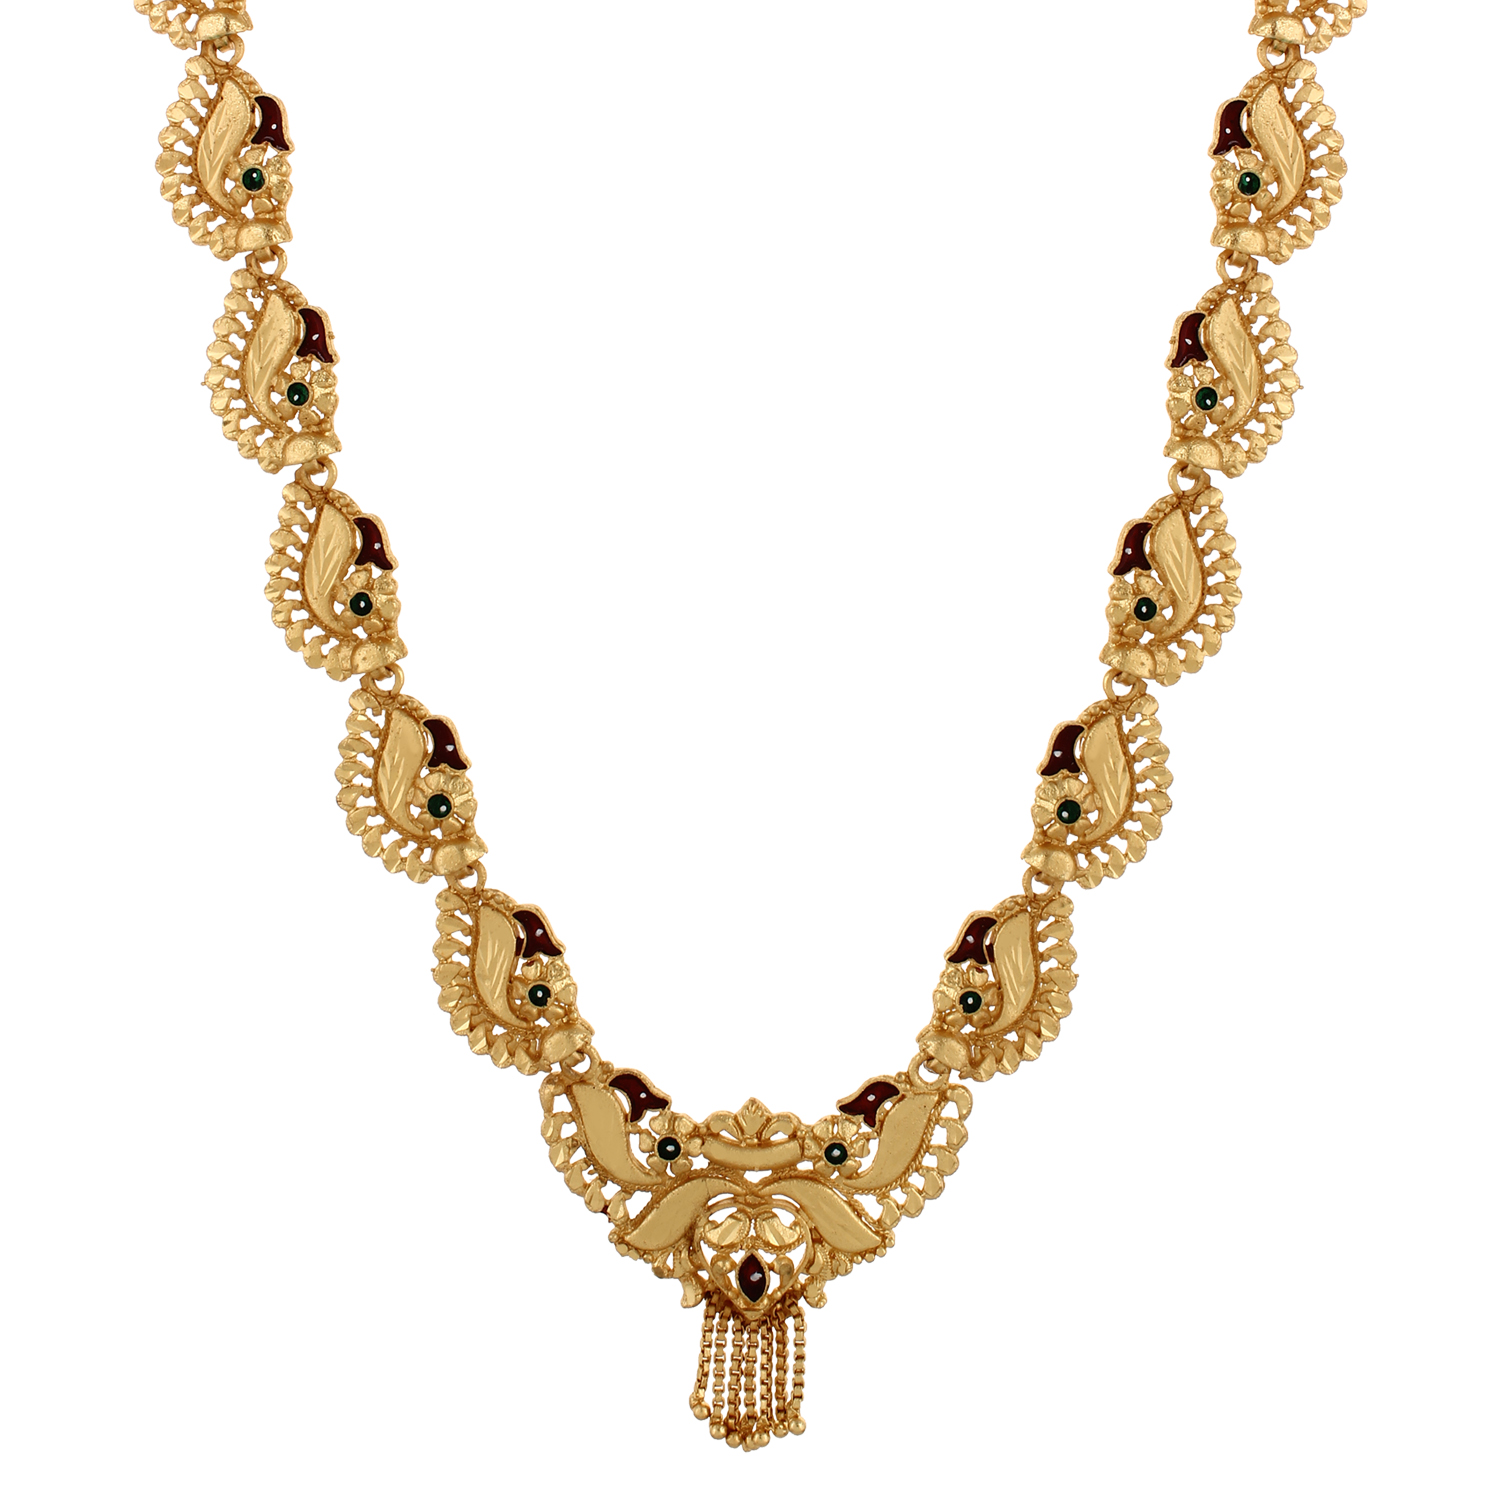 GoldNera Gold Plated Alloy Necklace Set